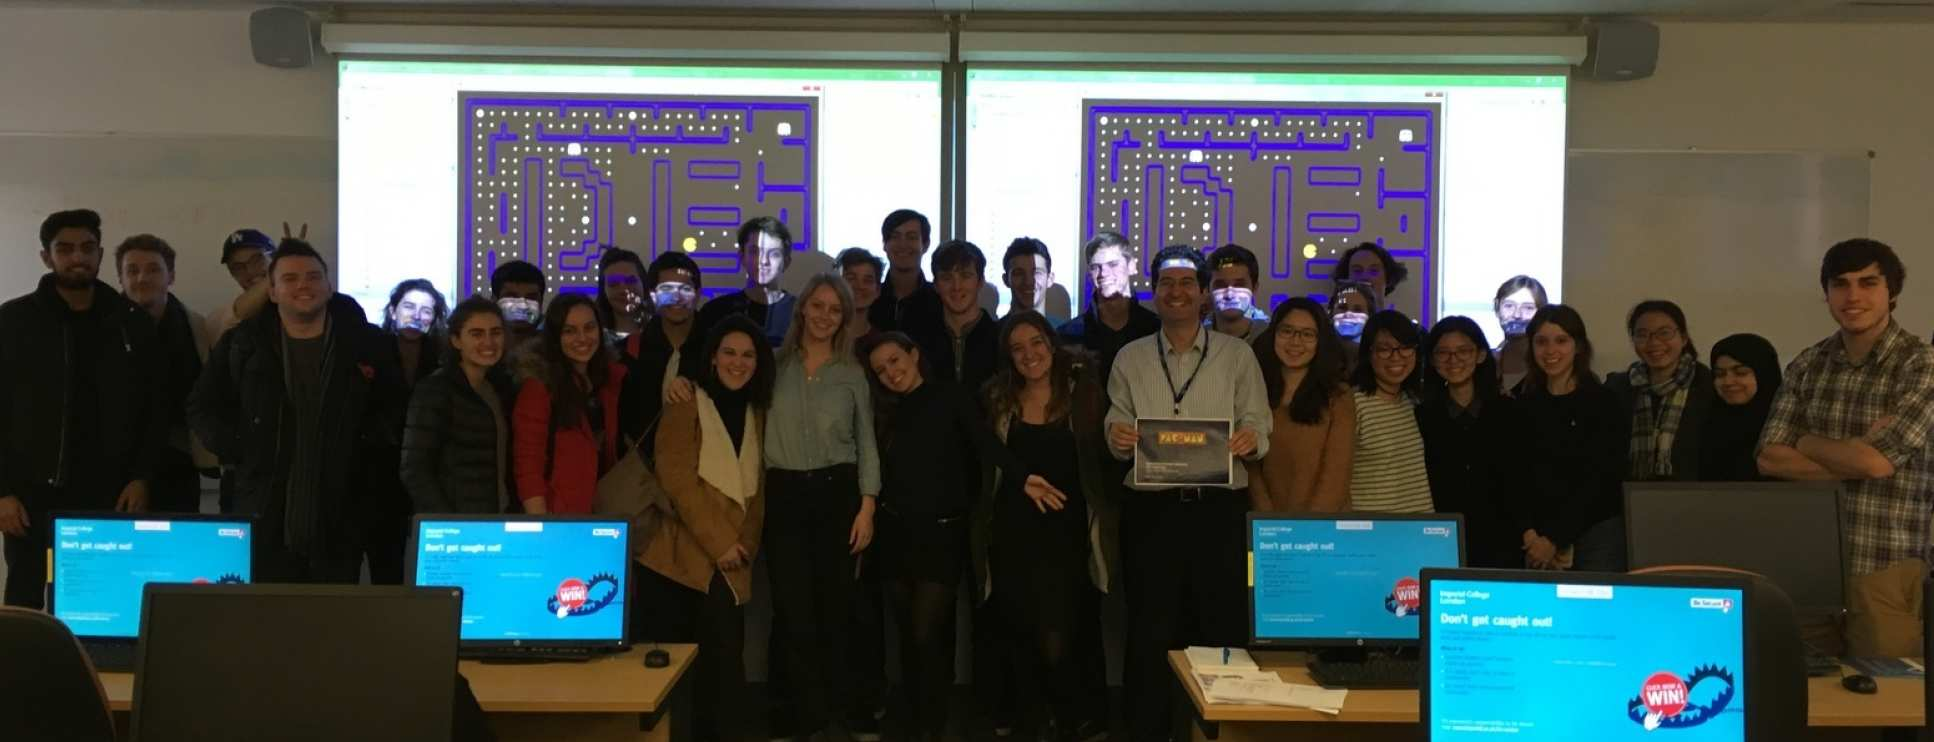 PAC-MAN programming competition for DE2 Computing 2